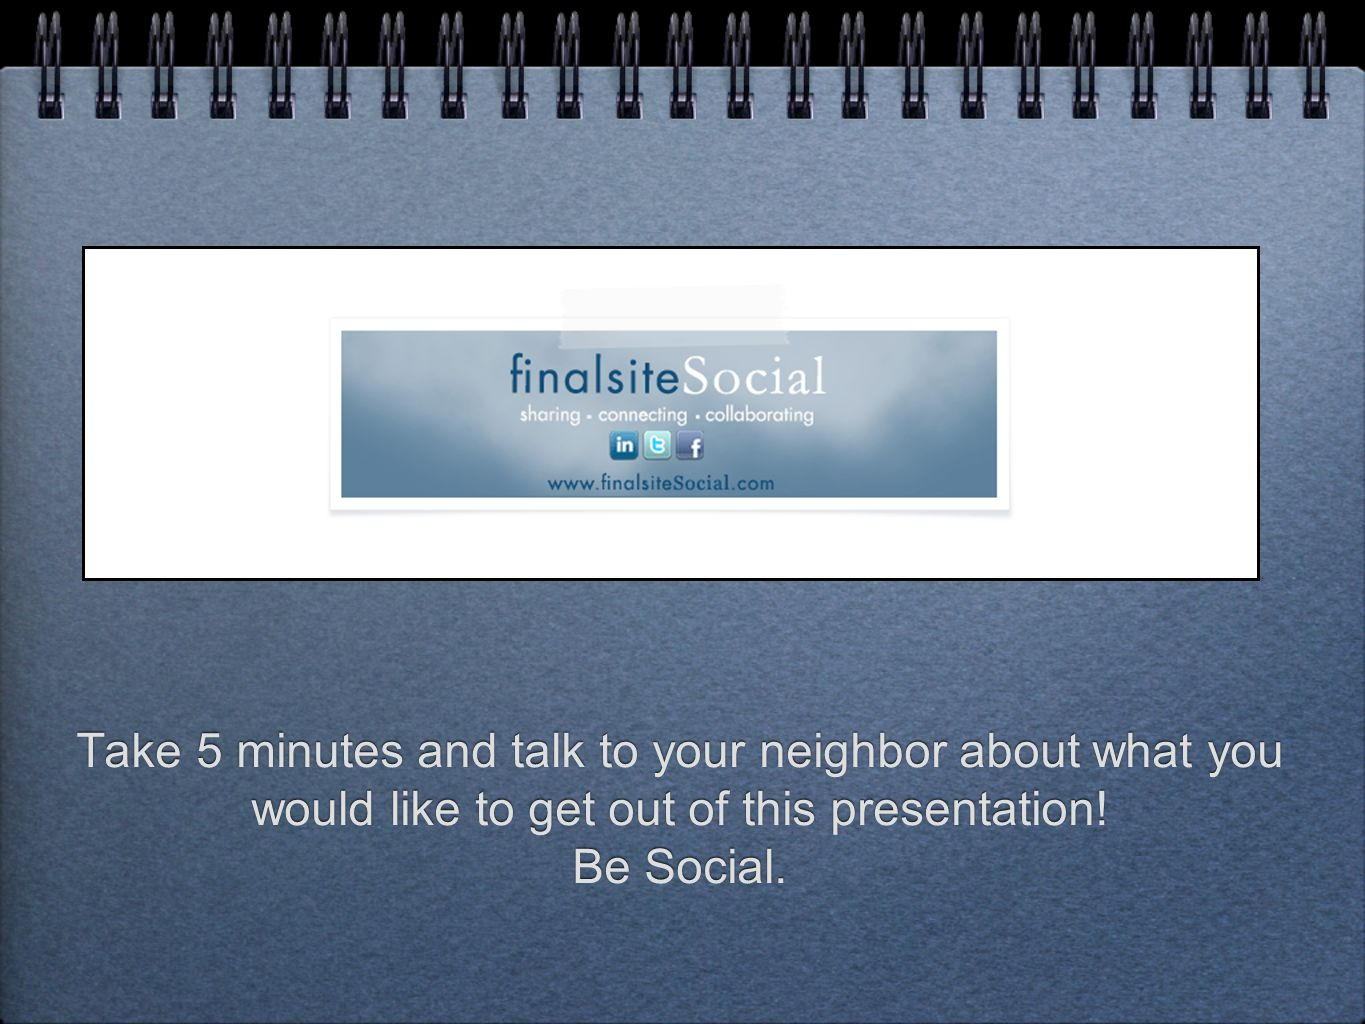 Take 5 minutes and talk to your neighbor about what you would like to get out of this presentation.